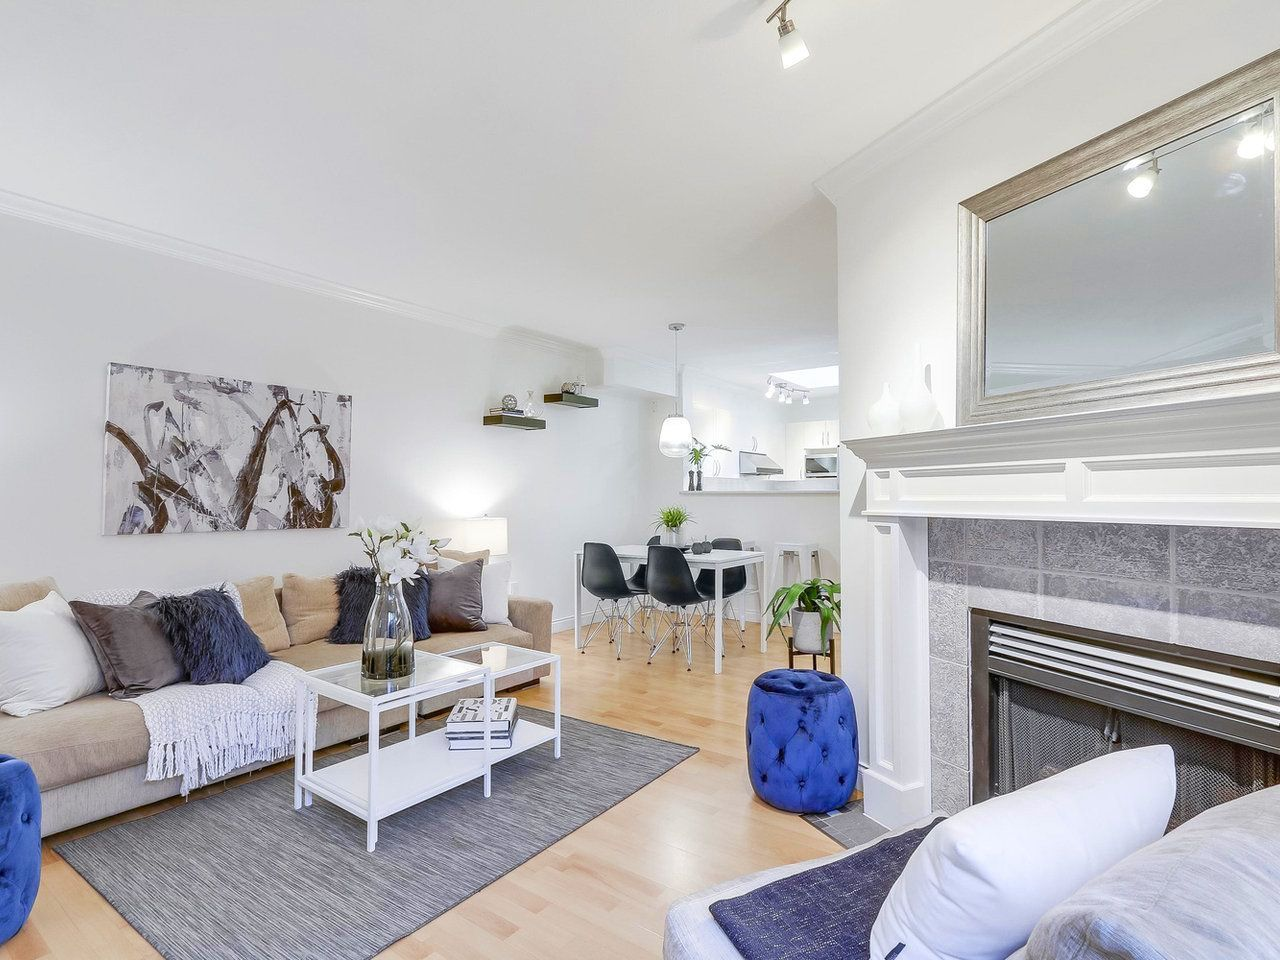 """Main Photo: 409 688 E 16TH Avenue in Vancouver: Fraser VE Condo for sale in """"VINTAGE EASTSIDE"""" (Vancouver East)  : MLS®# R2221853"""